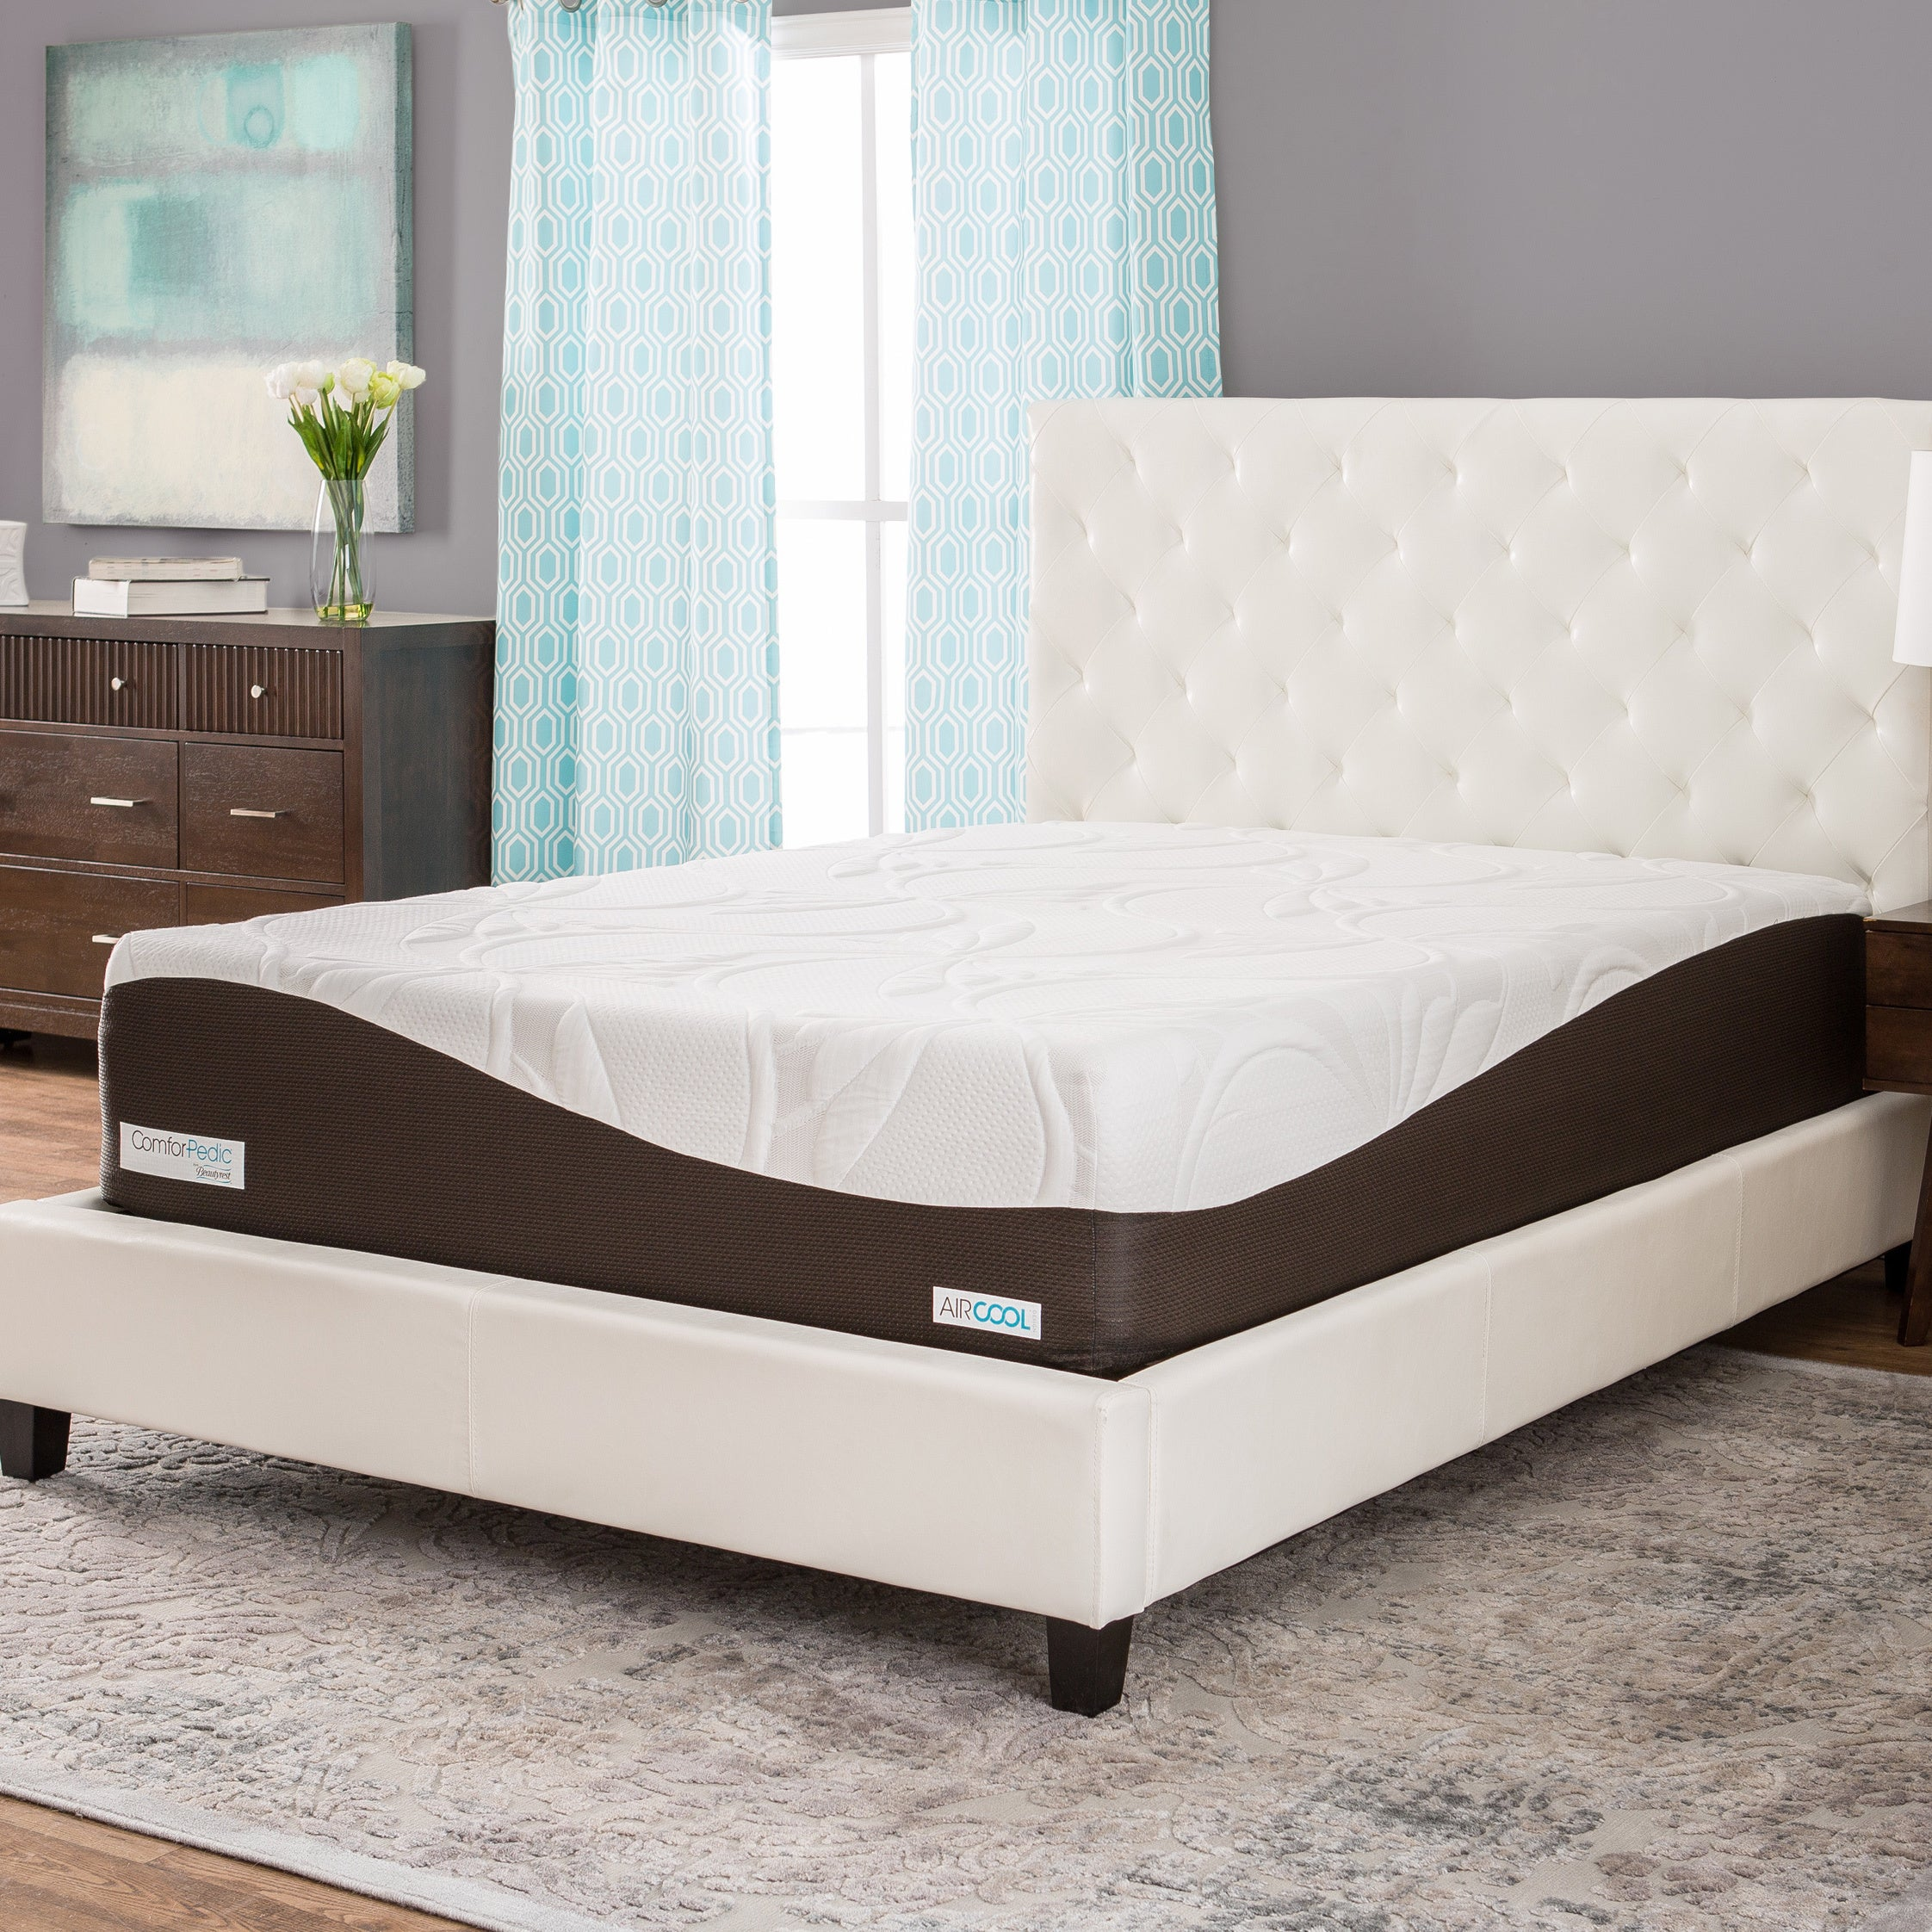 forPedic from Beautyrest 14 inch Full size Memory Foam Mattress